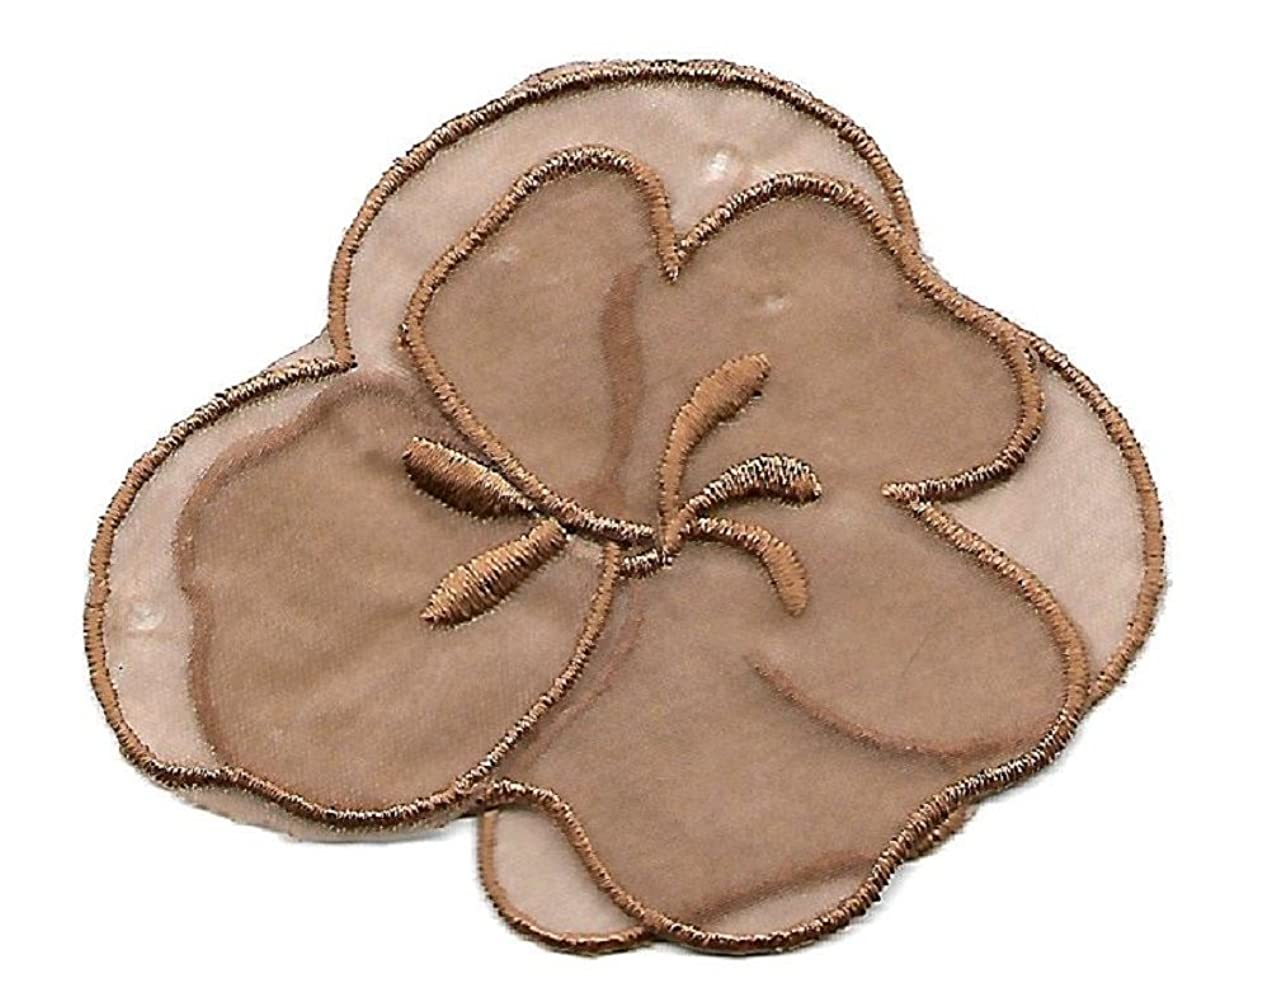 BEEKLEY BOWS Iron On Craft Sewing Applique for Accessories, Embellishments, Decor (Taupe Floral Applique)